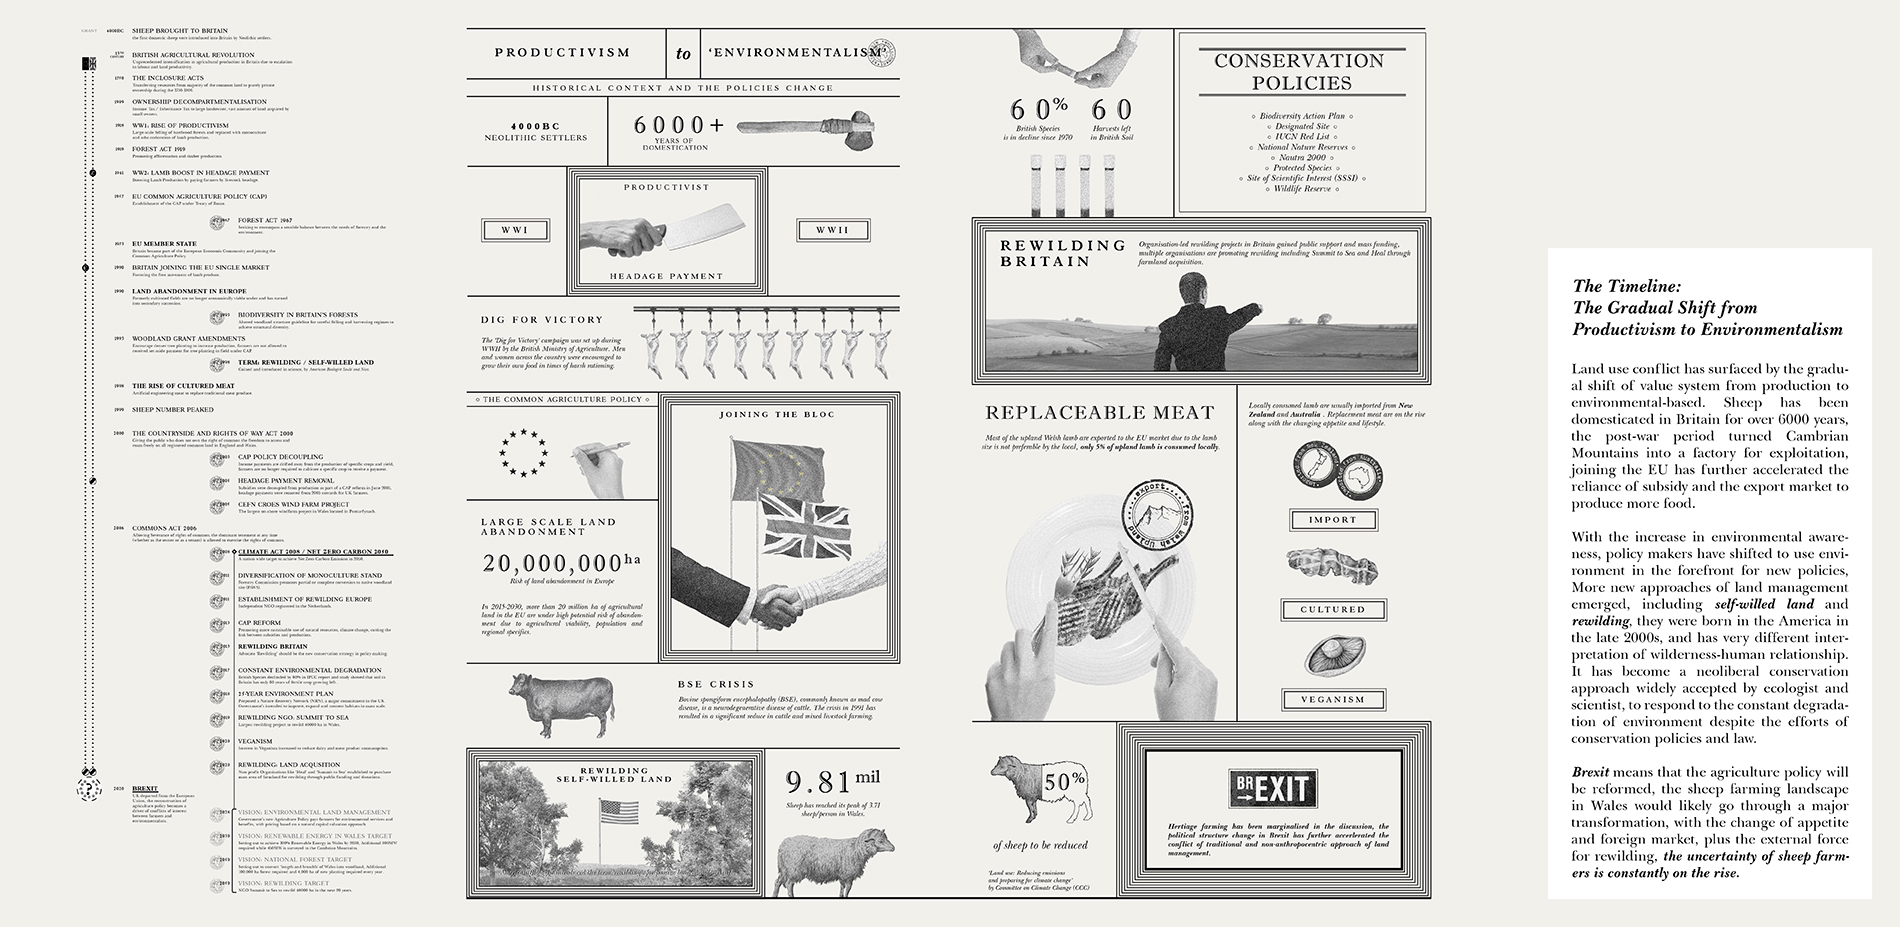 The Timeline: The Gradual Shift from Productivism to Environmentalism